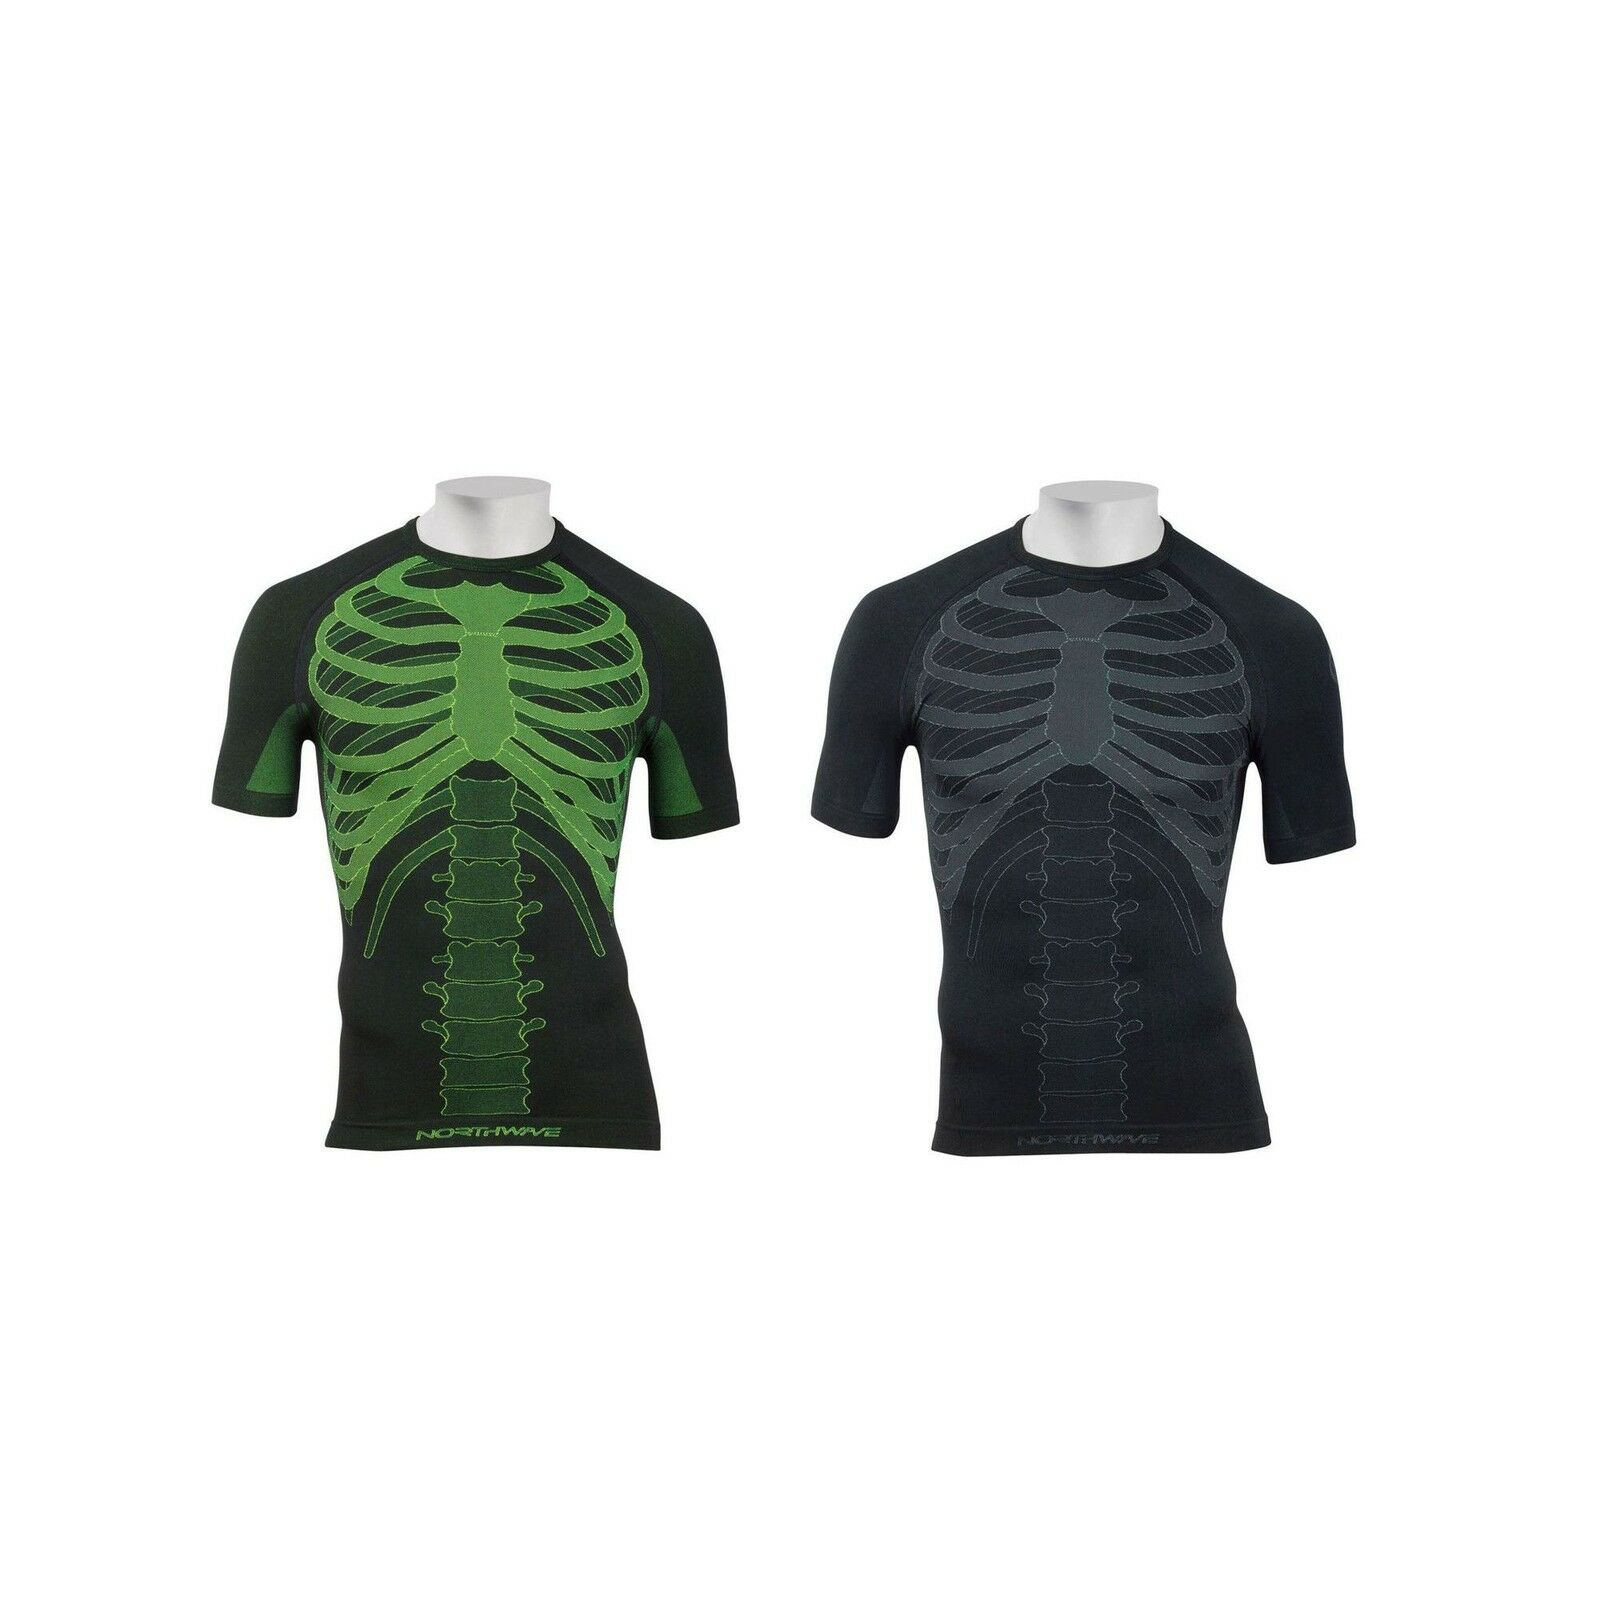 Northwave Body Fit Evo Road Racer Bike Cycling  Cycle Short Sleeve Jersey Top  best price